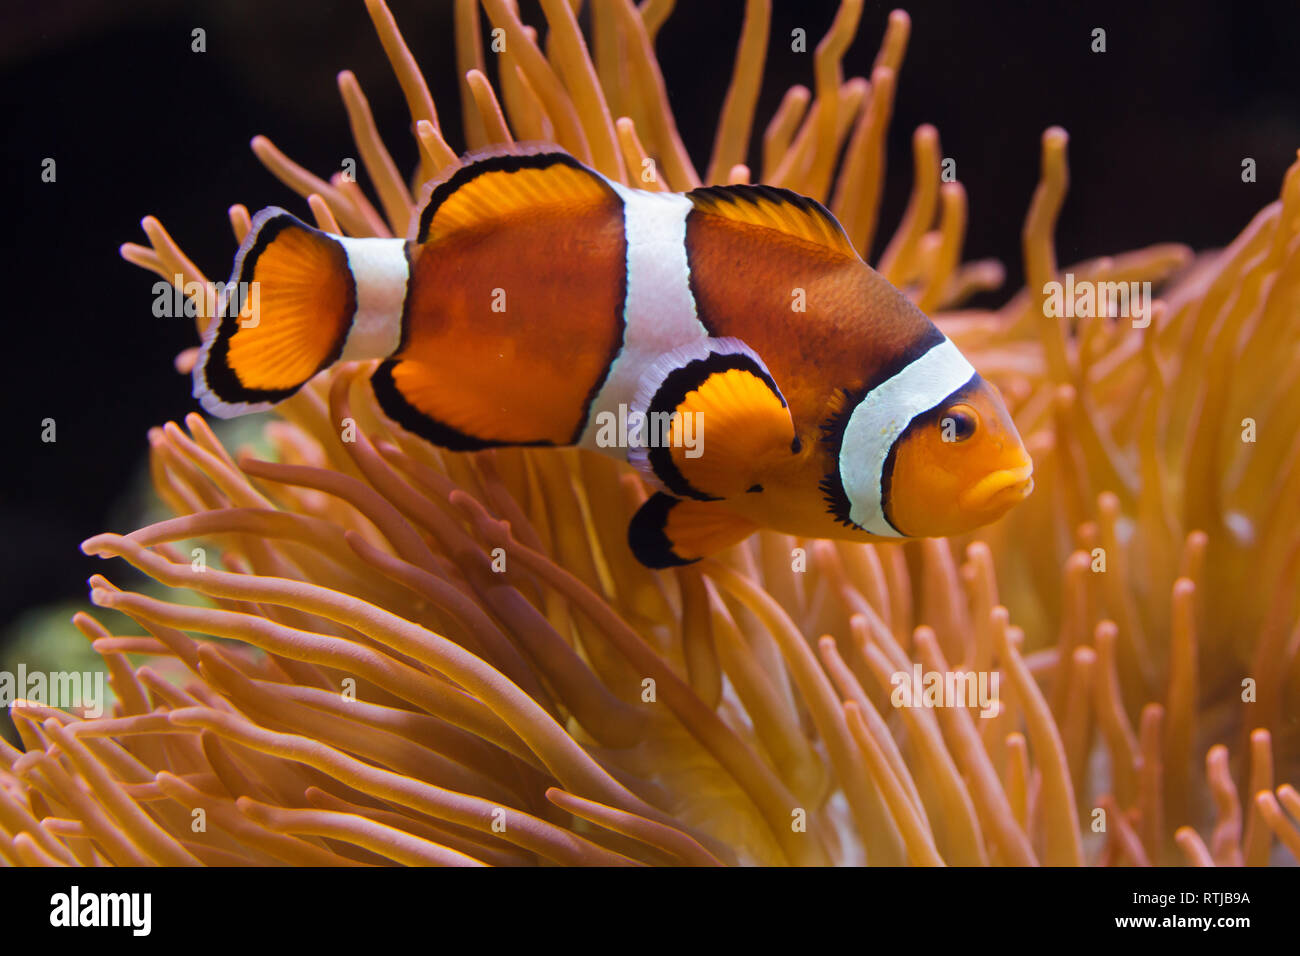 Ocellaris clownfish (Amphiprion ocellaris), also known as the false percula clownfish, swimming in the magnificent sea anemone (Heteractis magnifica). Stock Photo